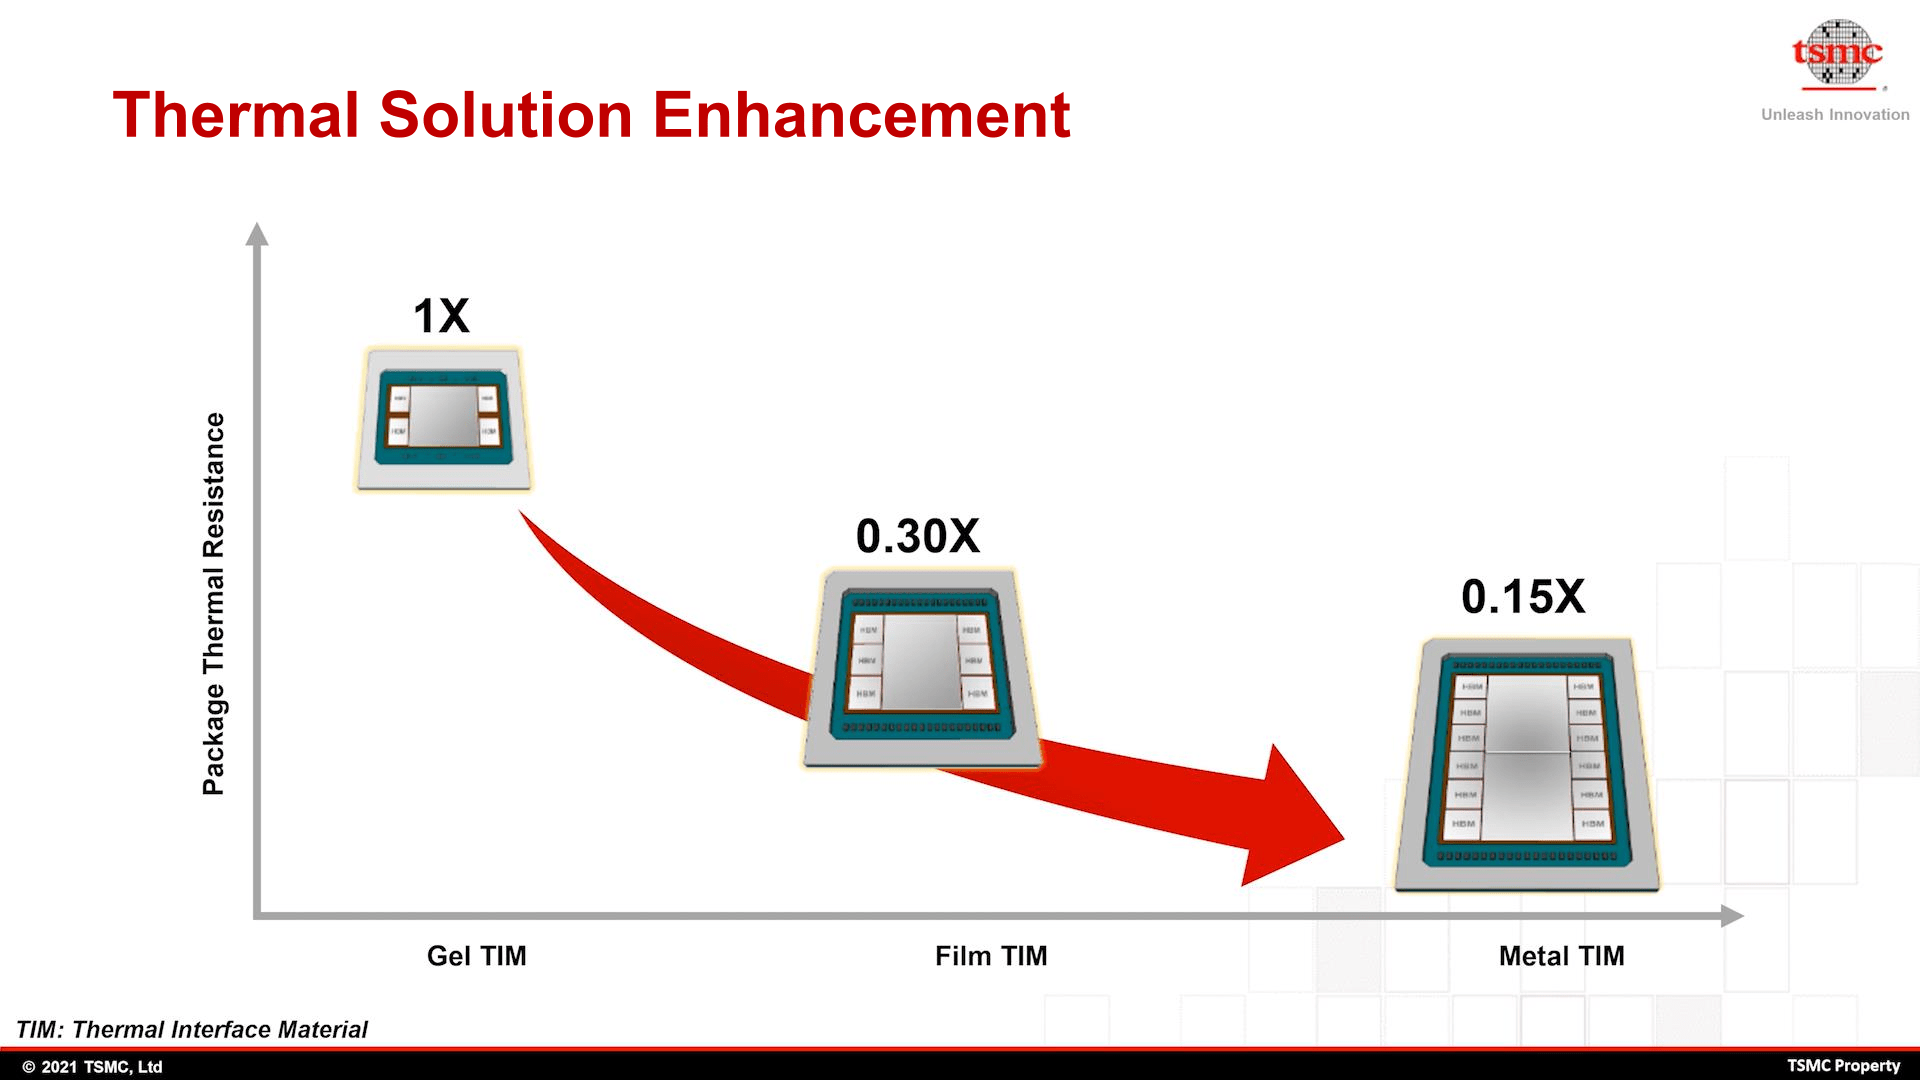 TSMC's developments in cooling solutions